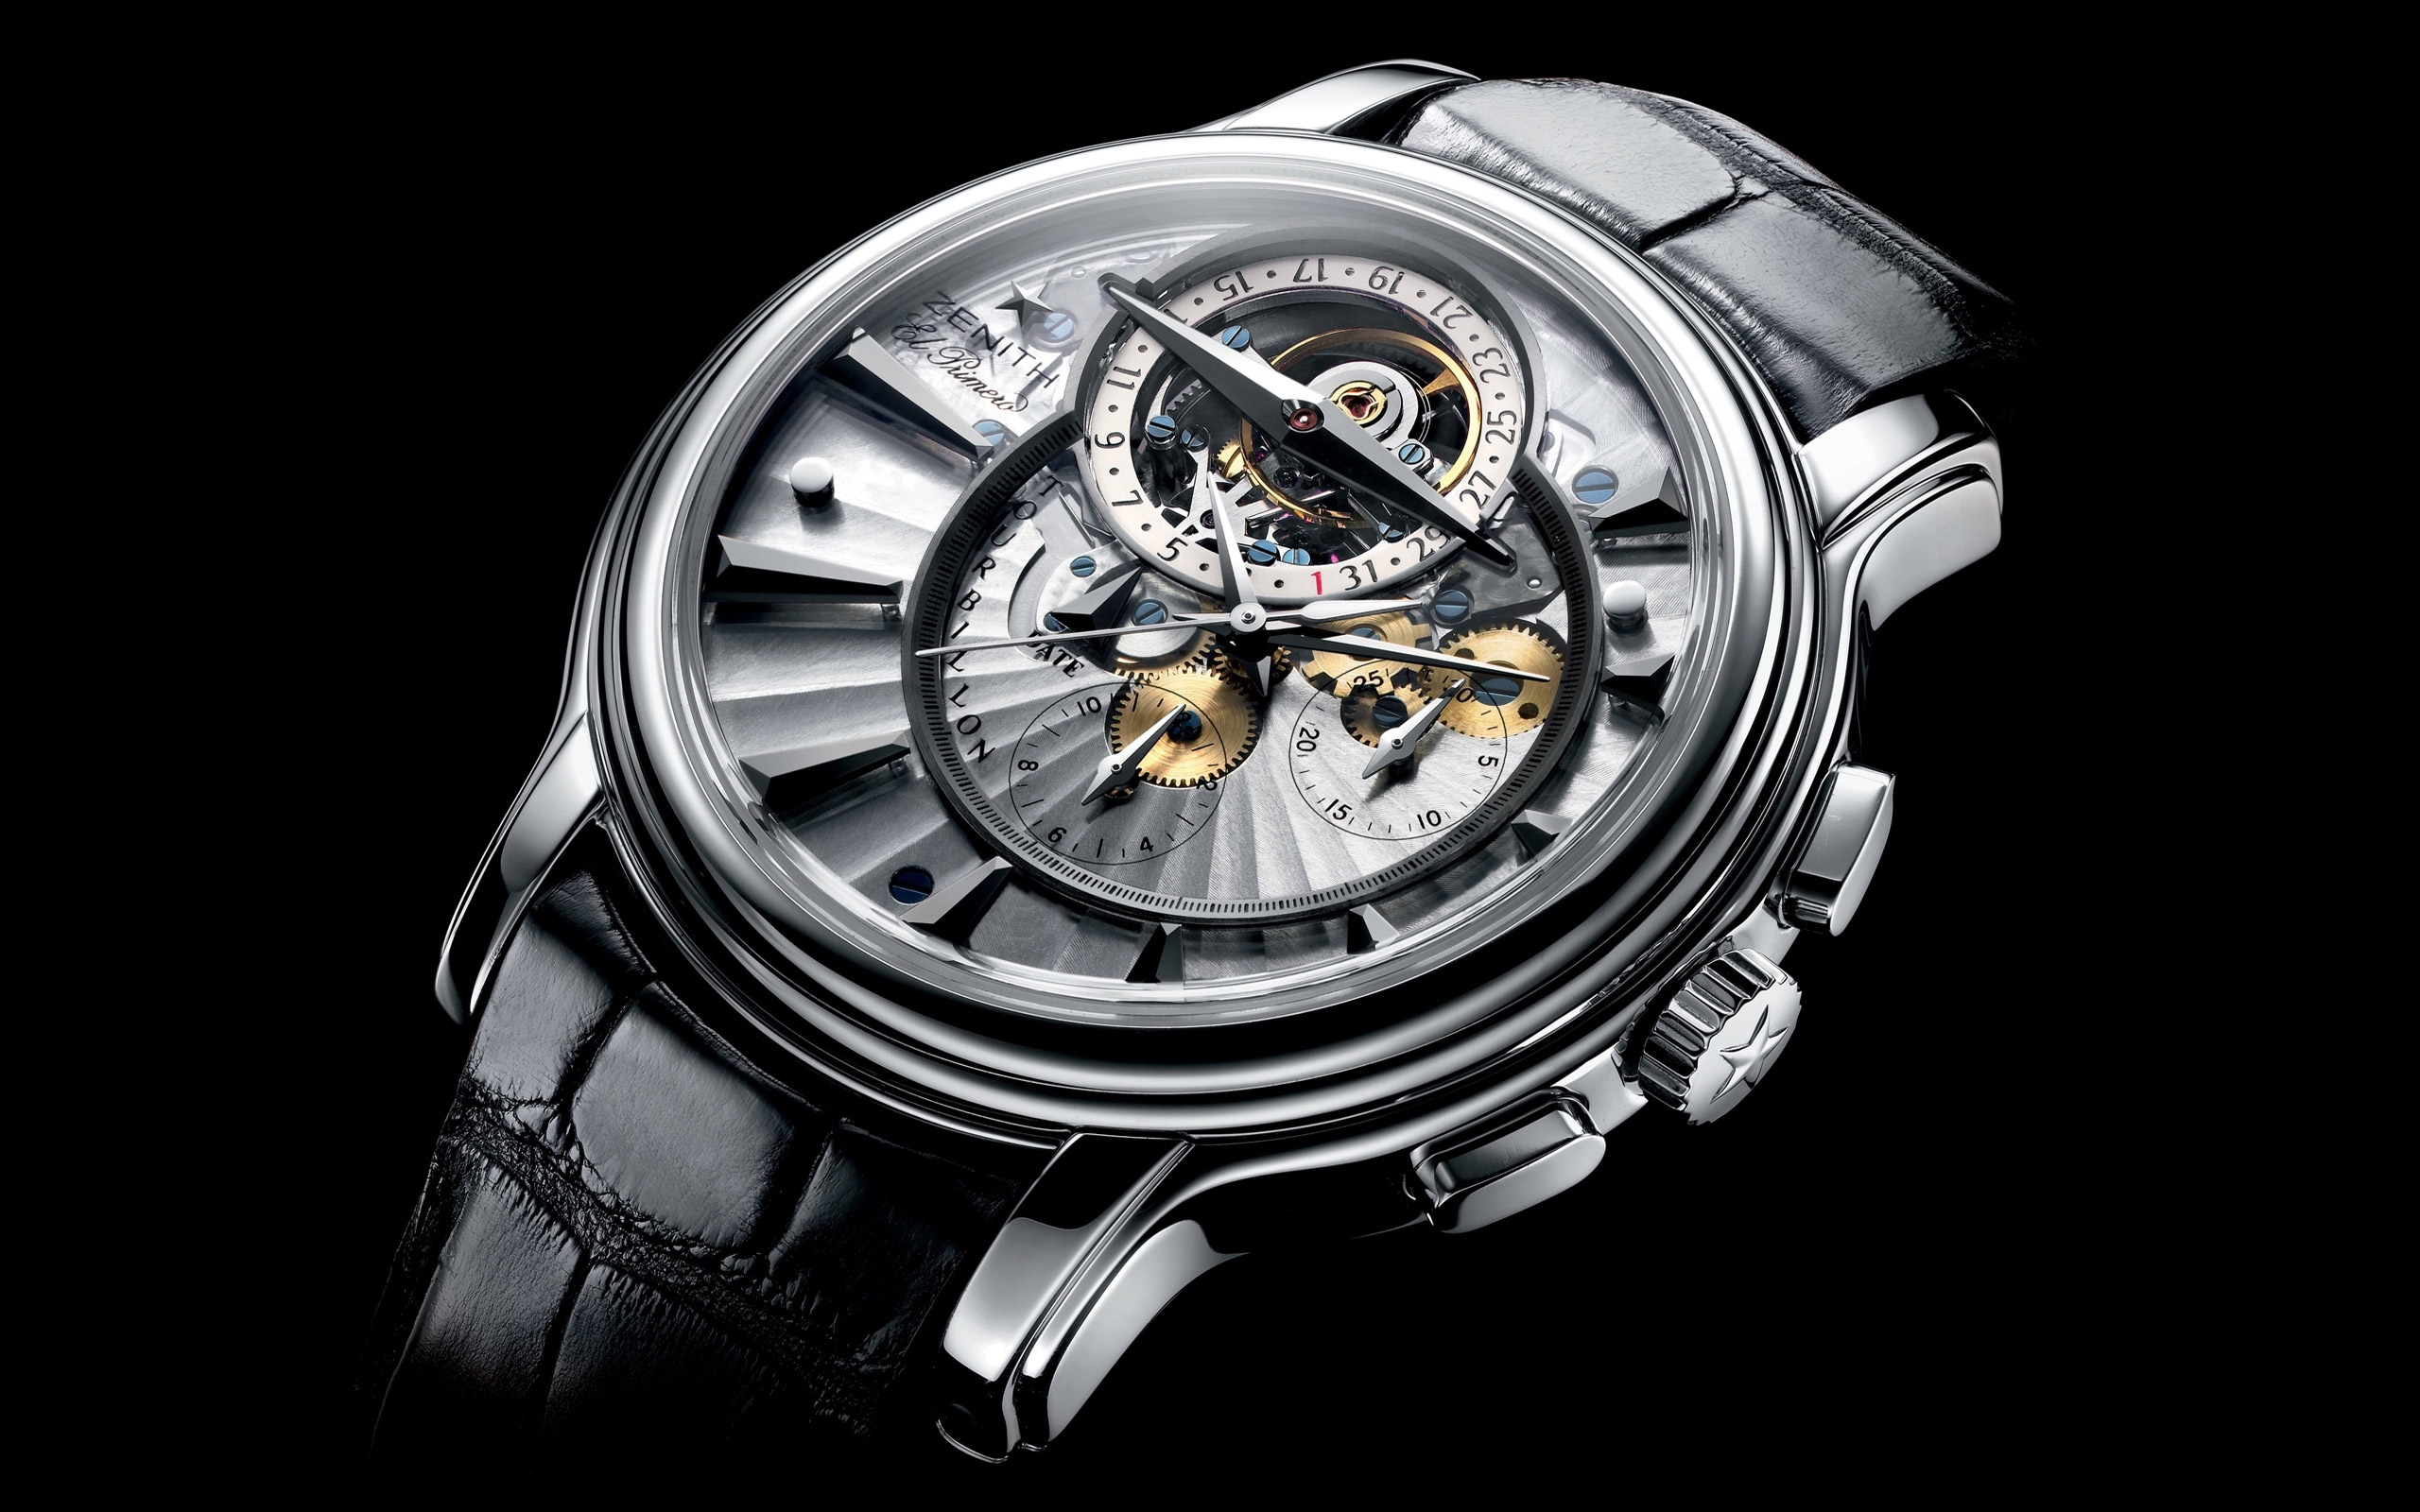 Zenith Watch HD Wallpaper Background Image 2560x1600 ID 2560x1600